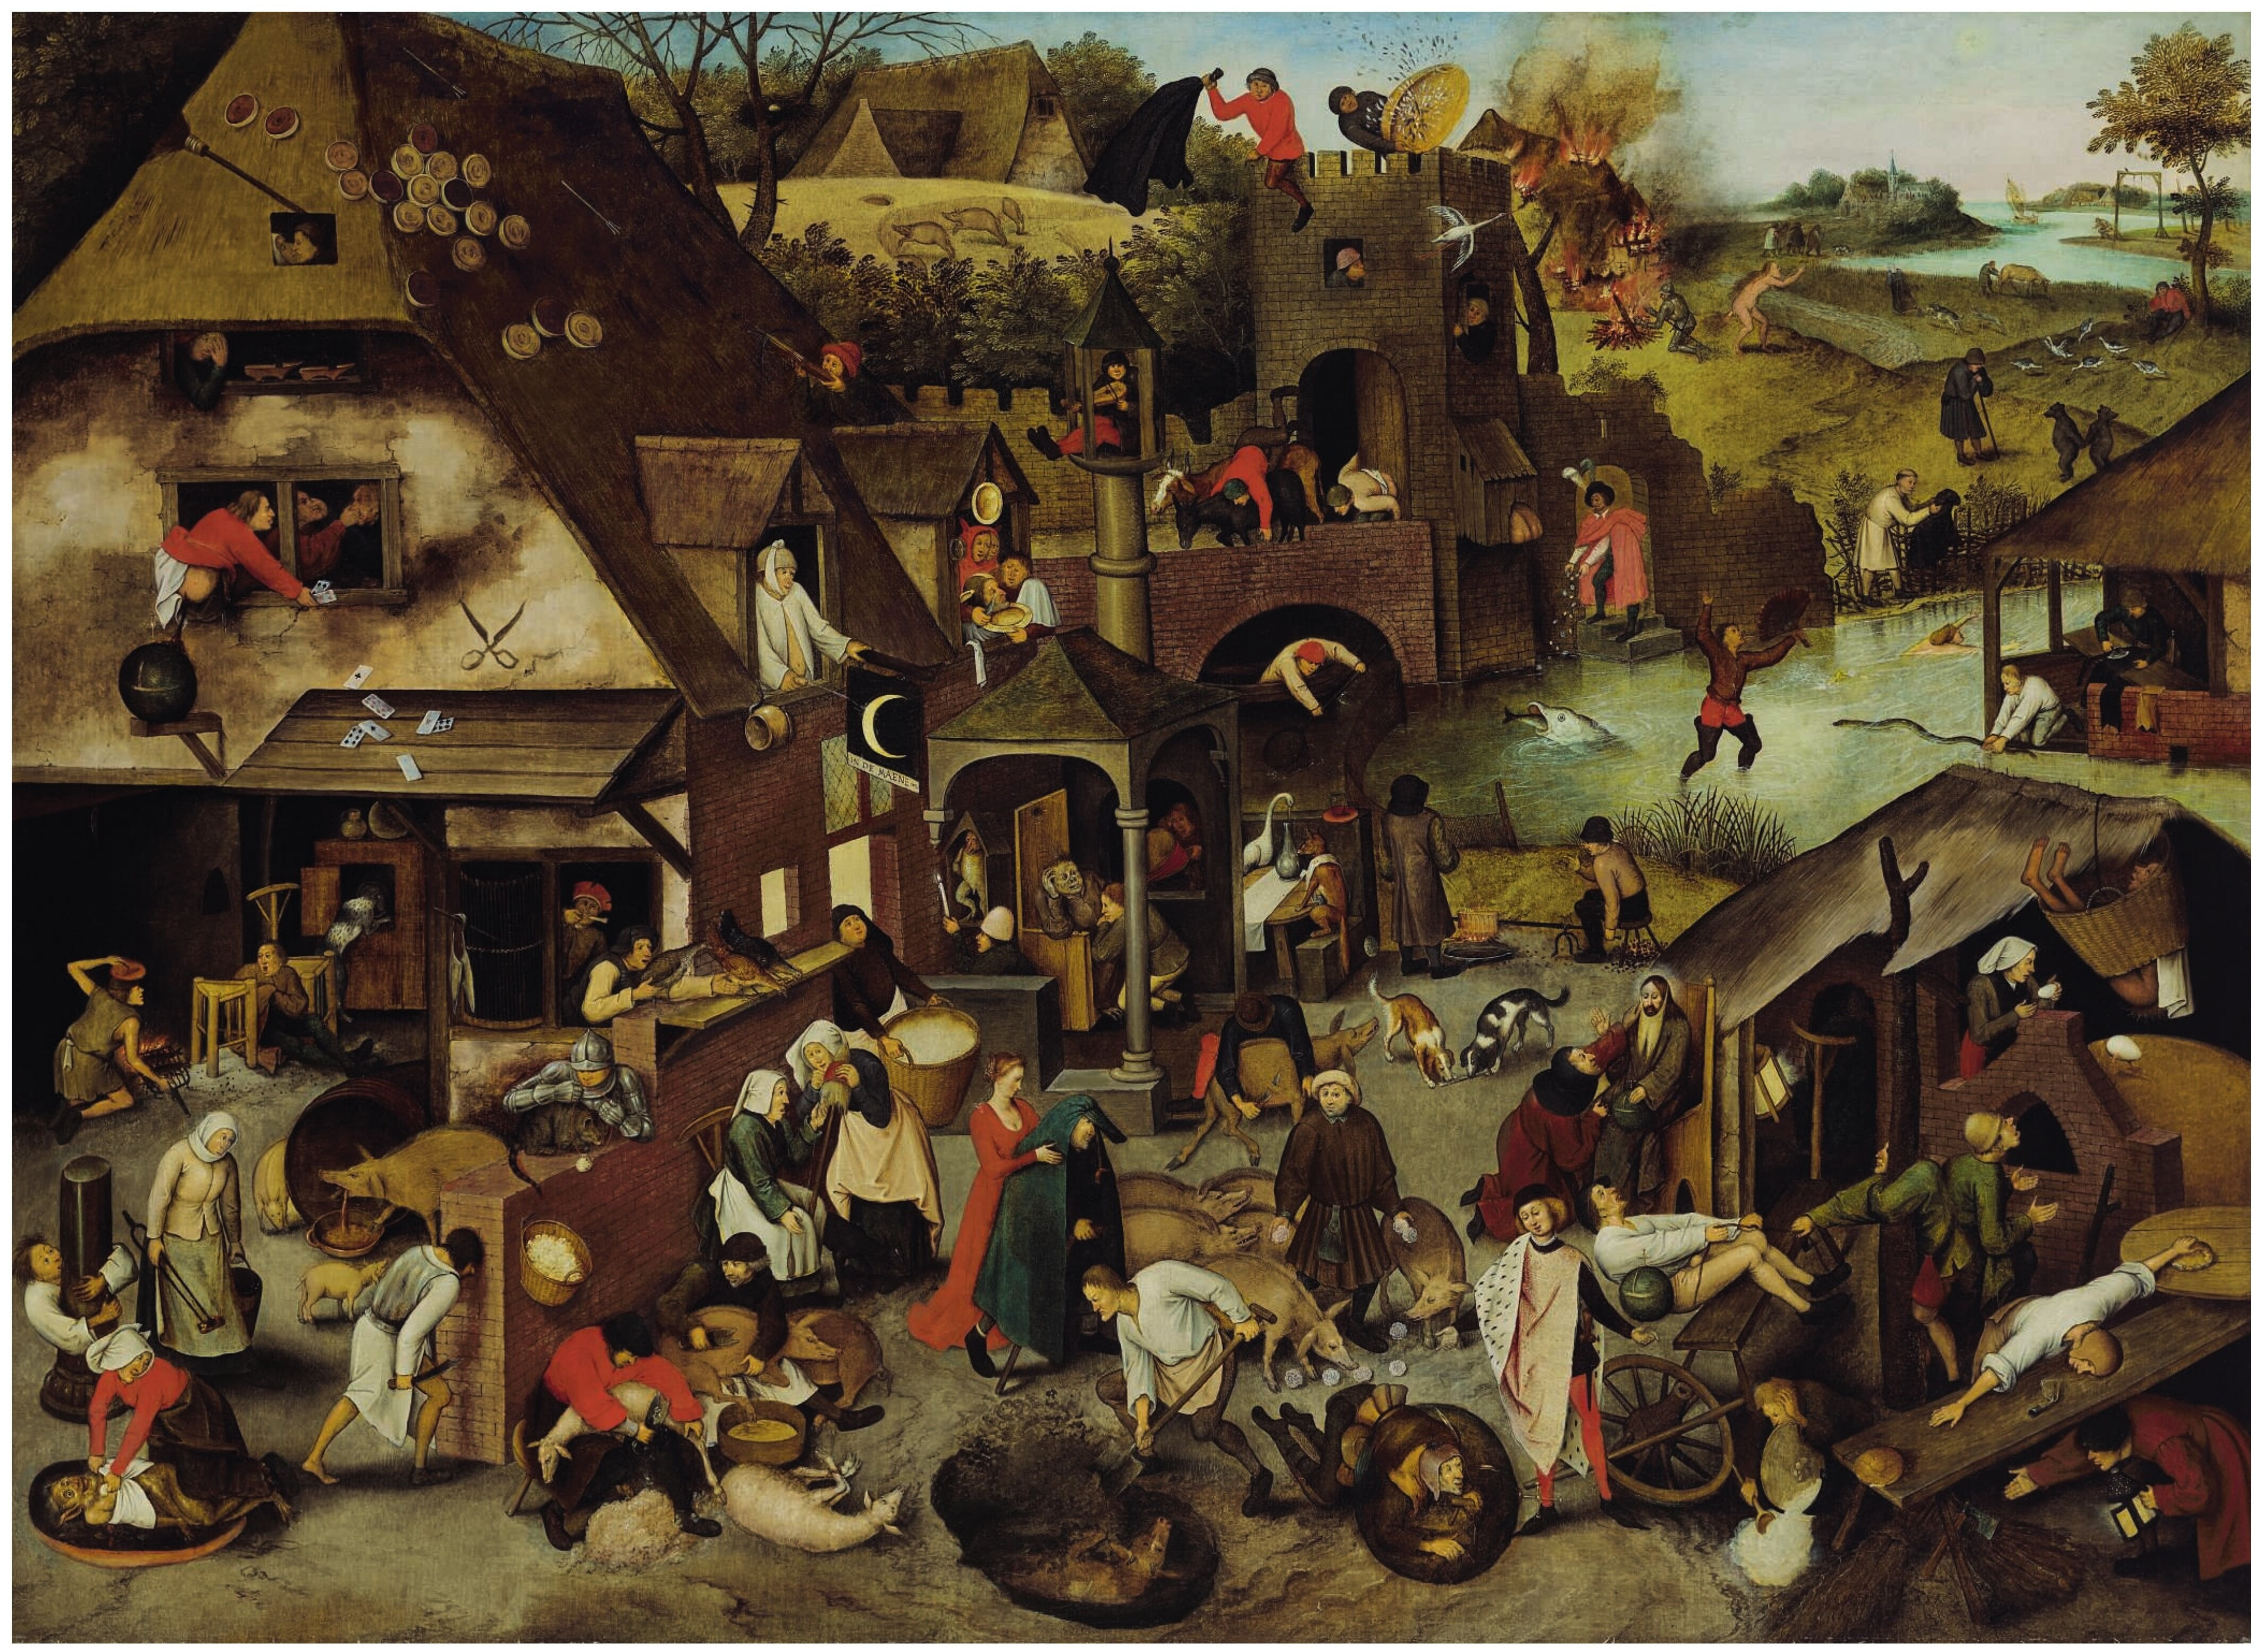 Pieter BRUEGHEL II (c.1564-1637/38) The Netherlandish Proverbs